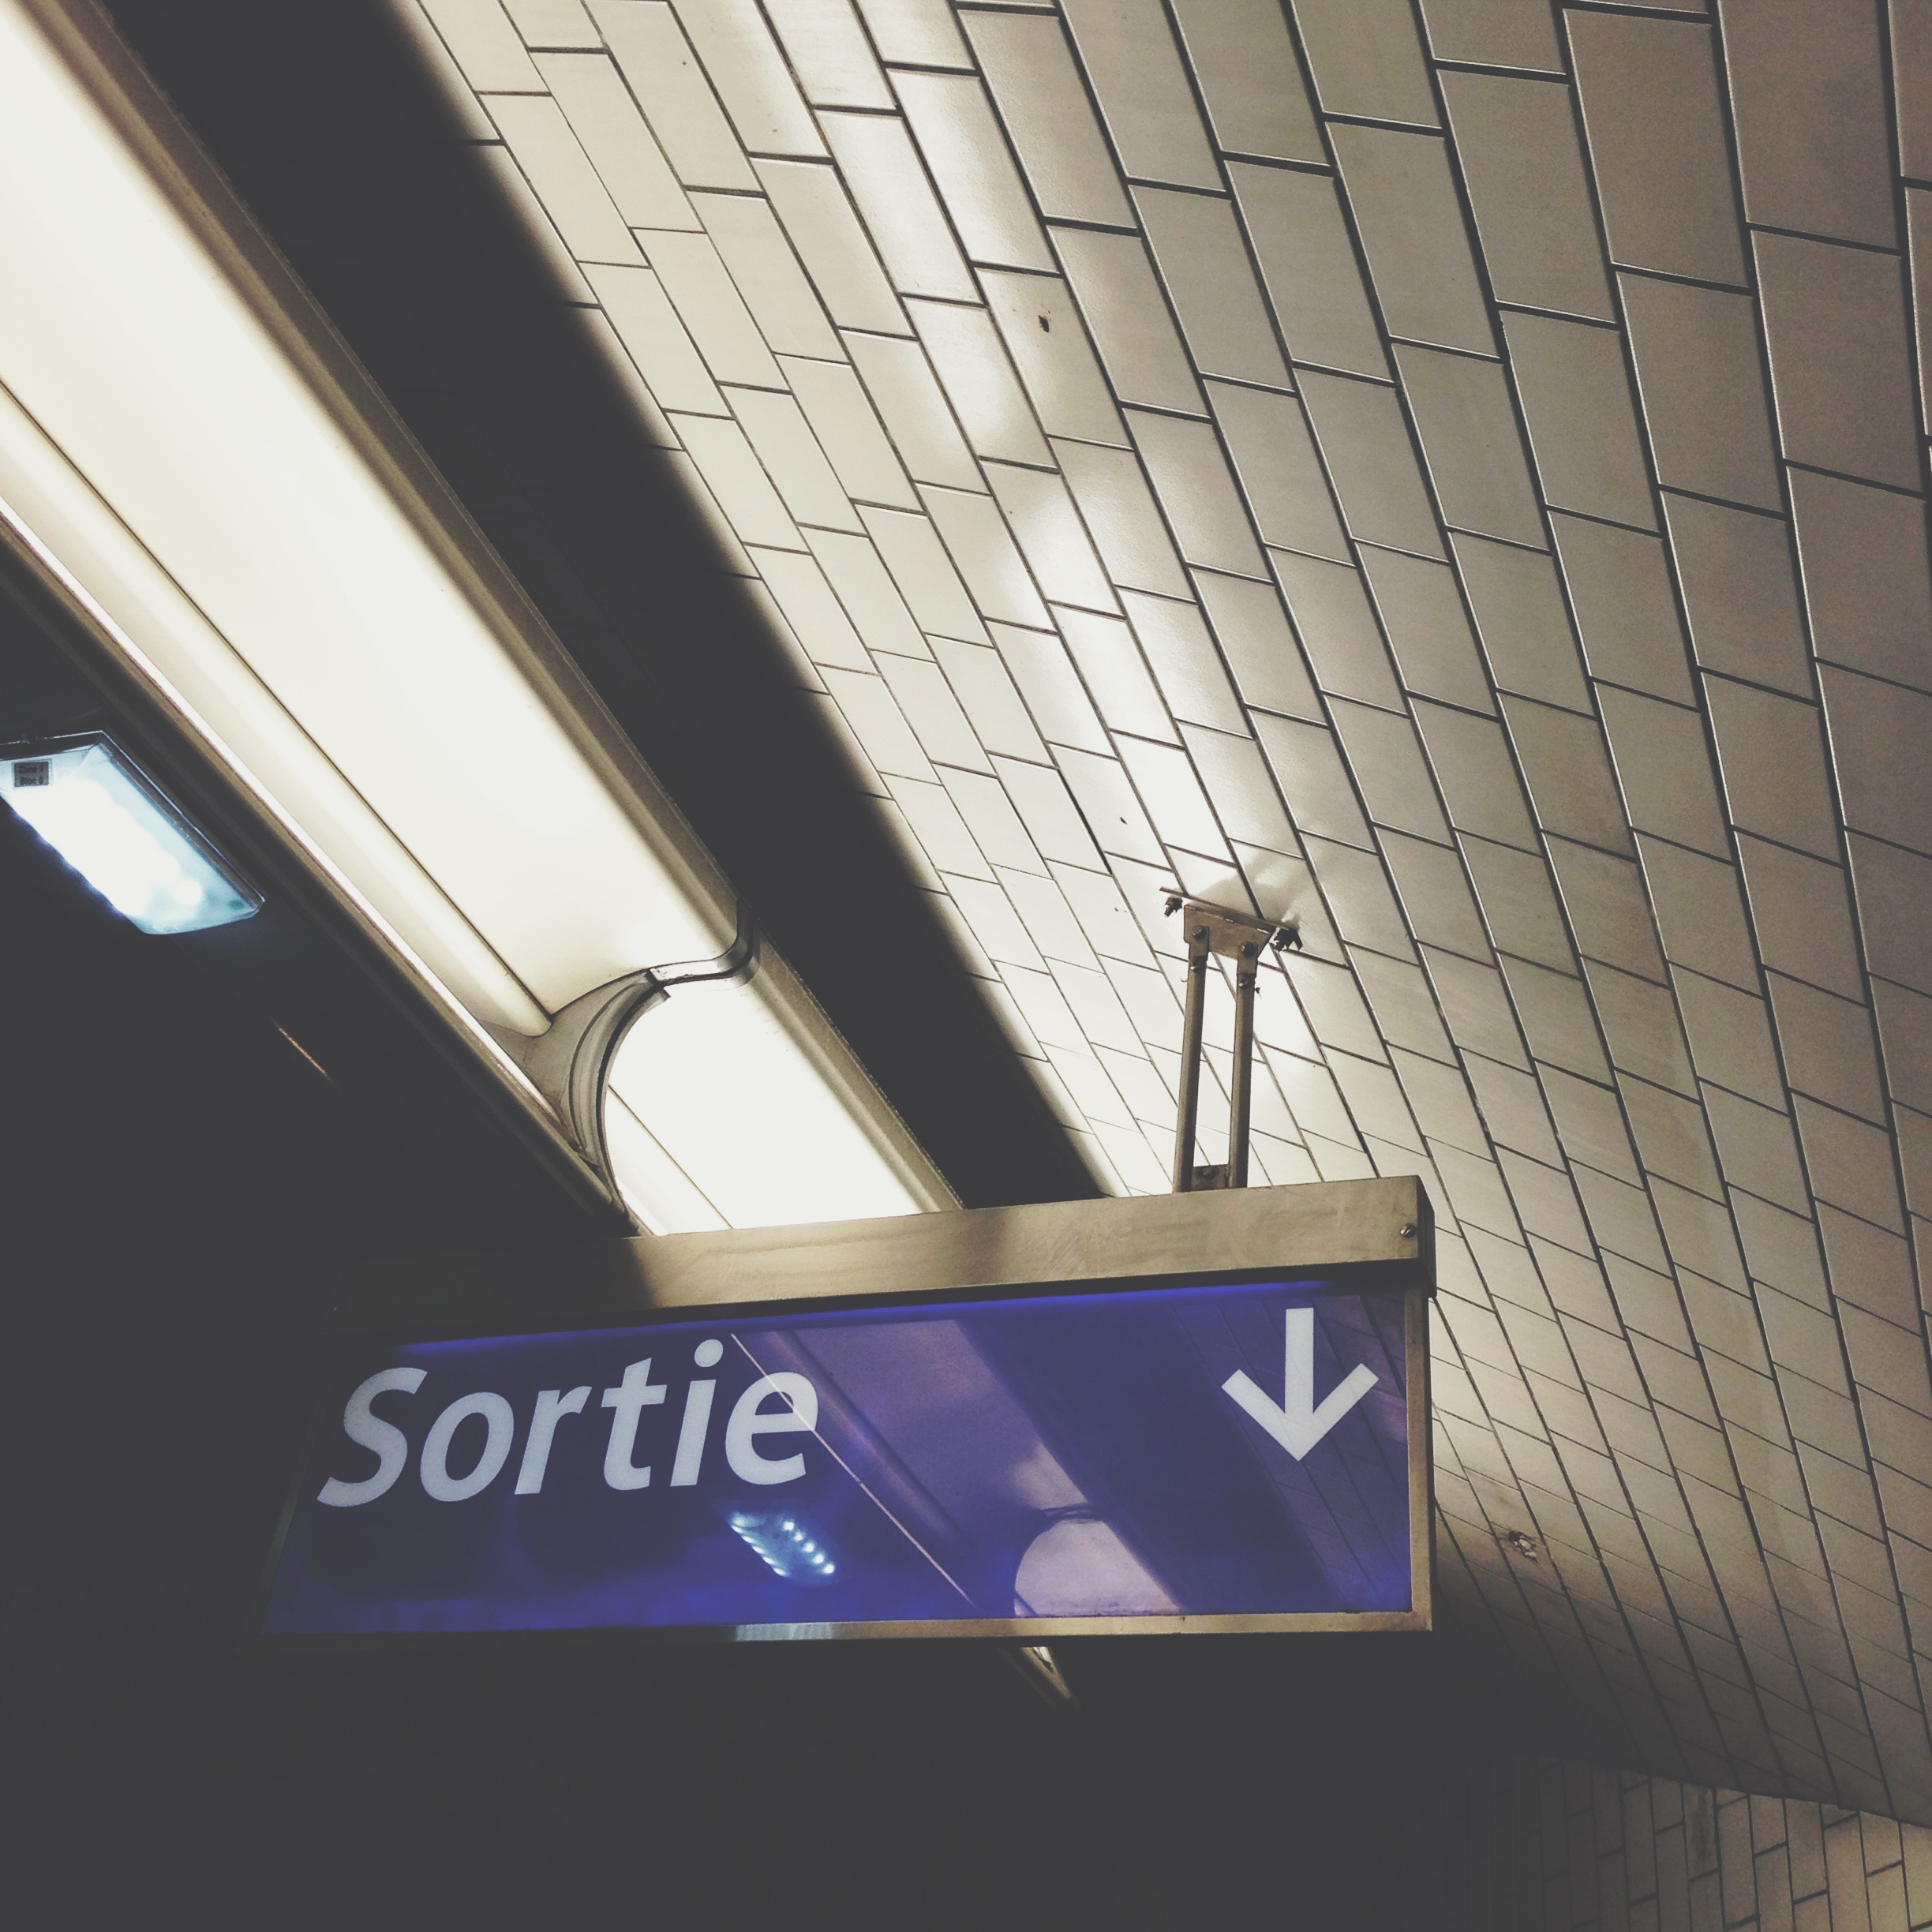 Going out of the métro